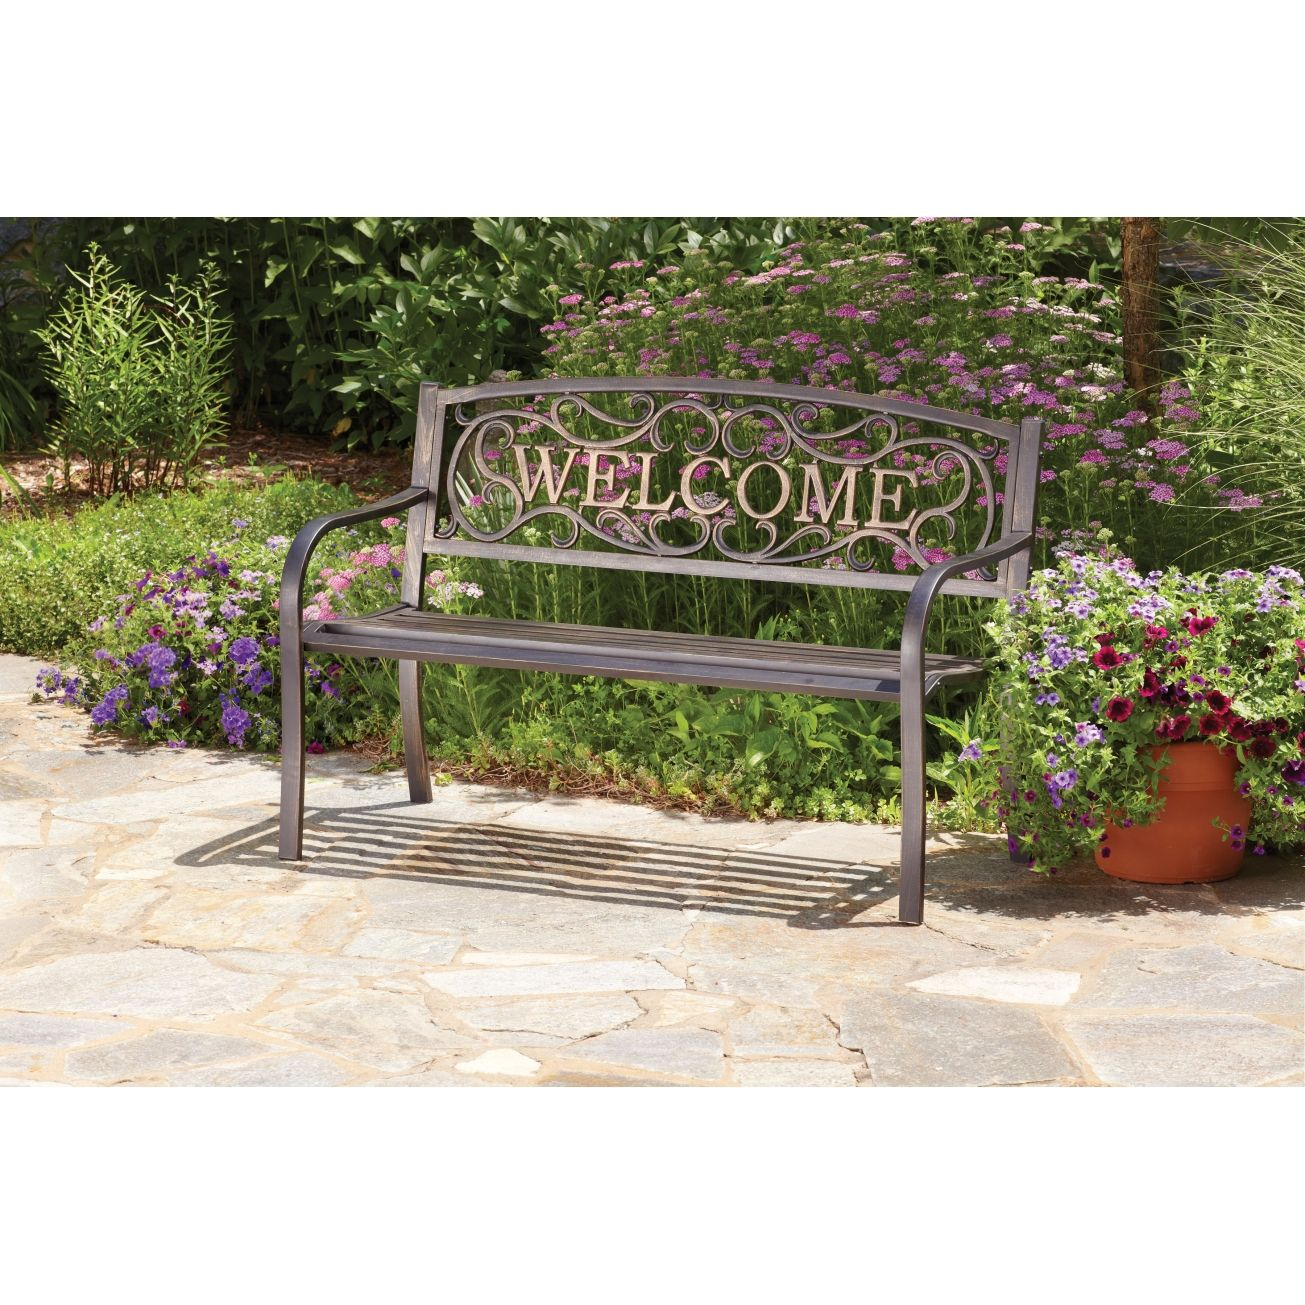 Living Accents Metropolitan Patio Furniture: Living Accents Welcome Park Bench